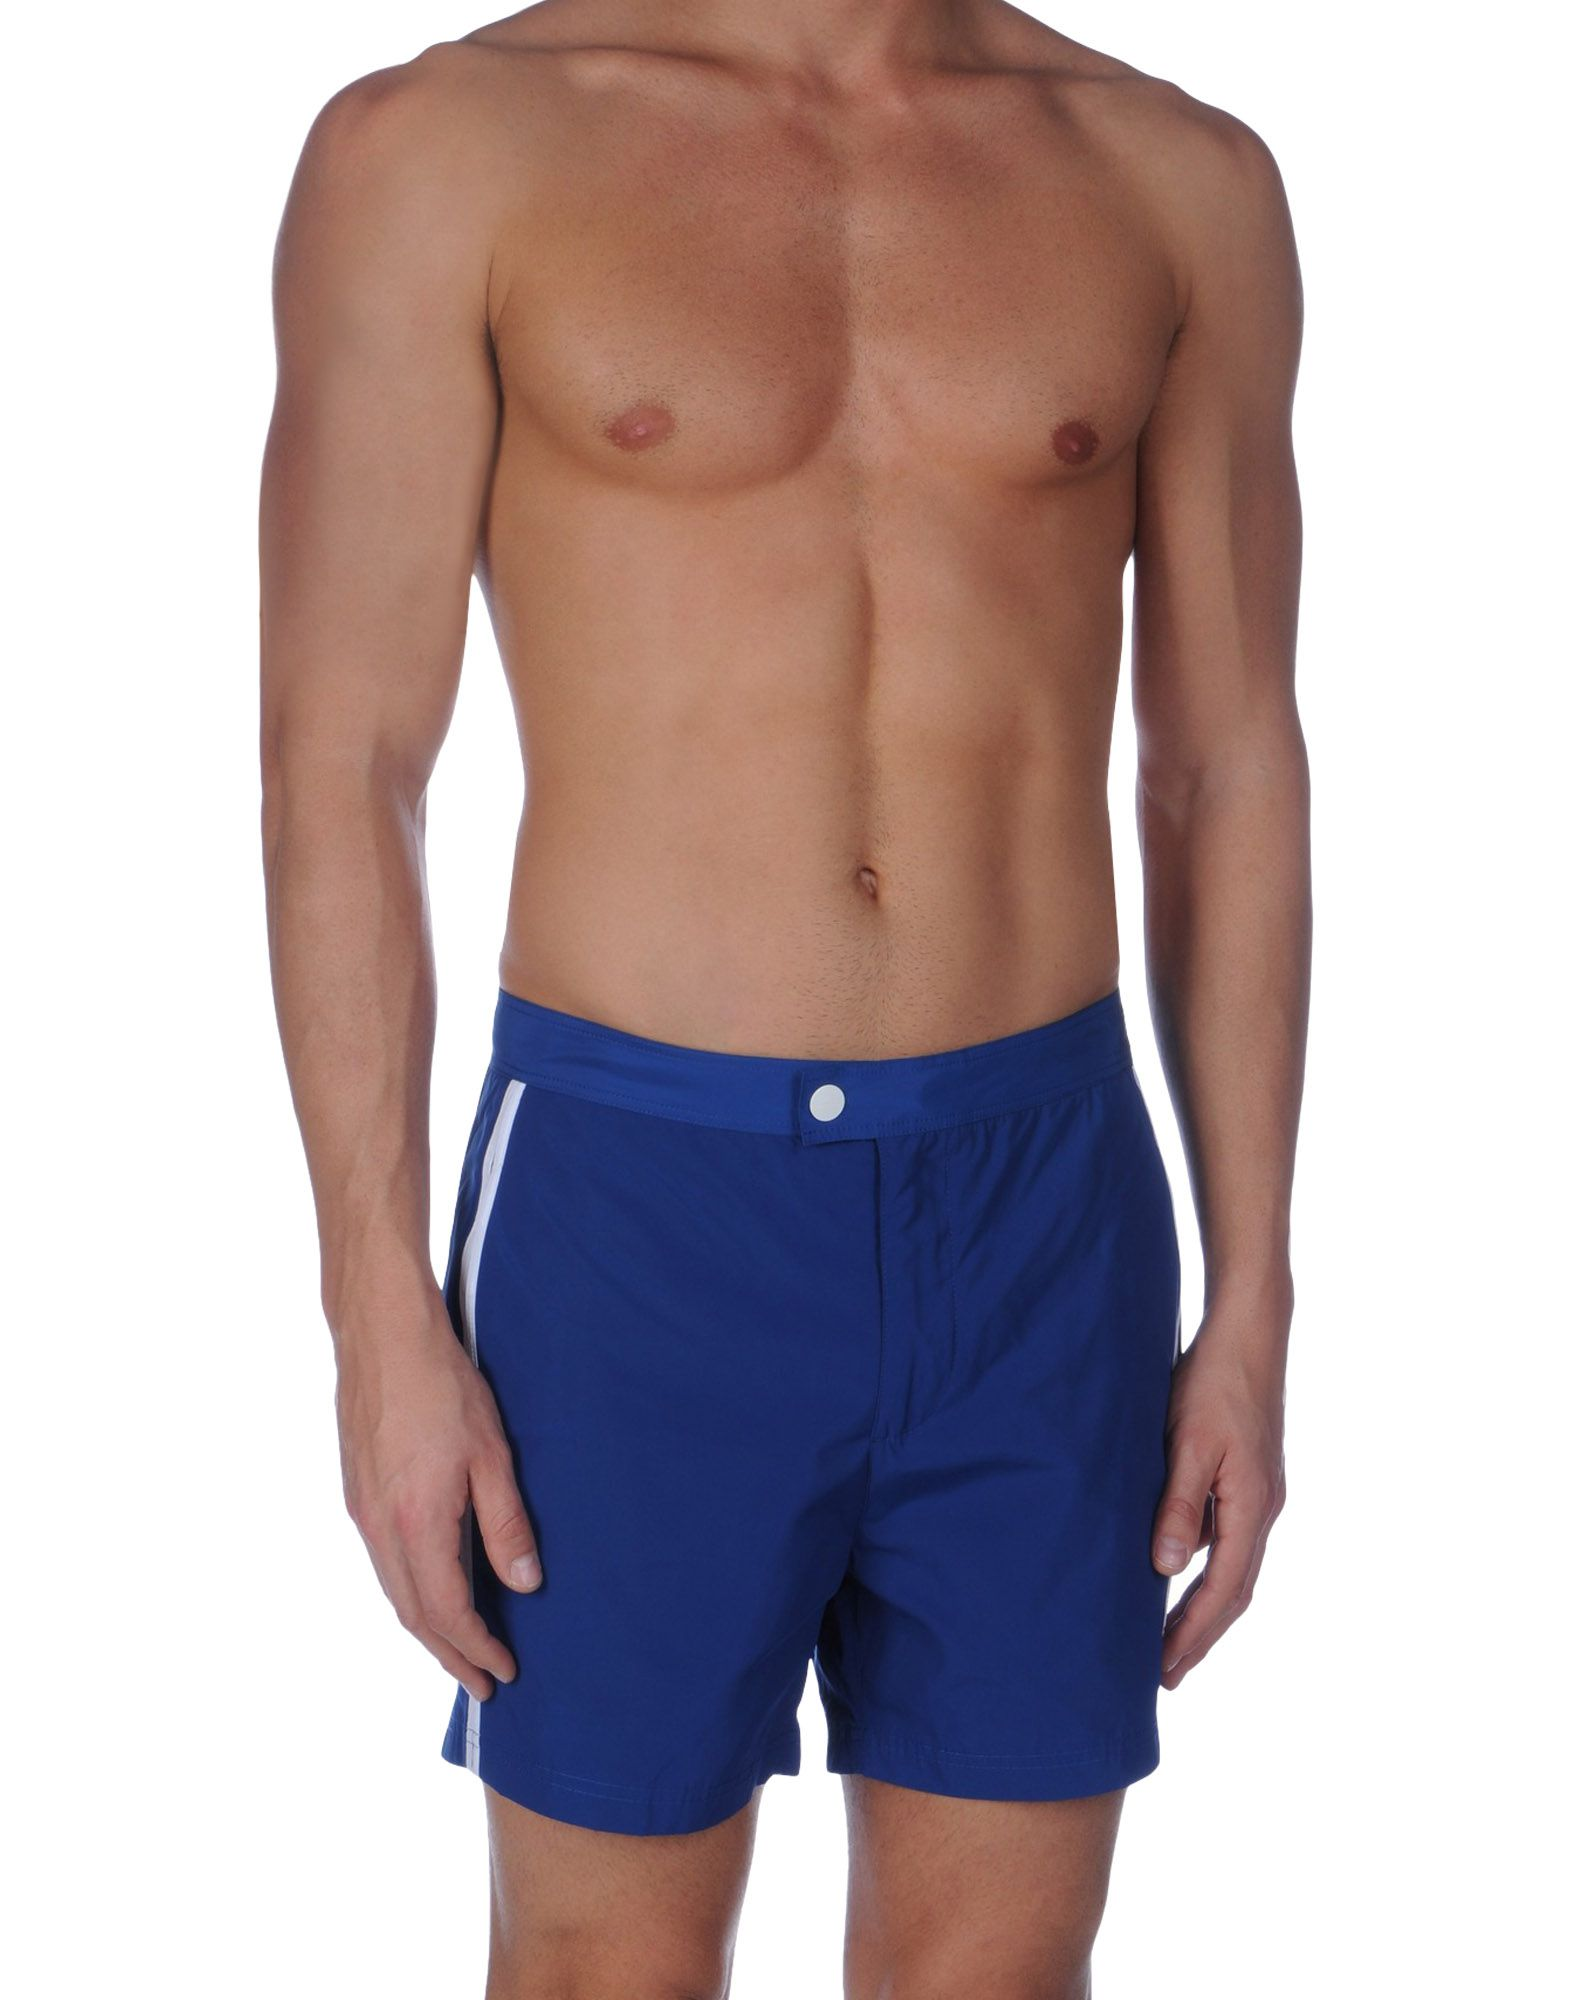 michael kors male michael kors swim trunks